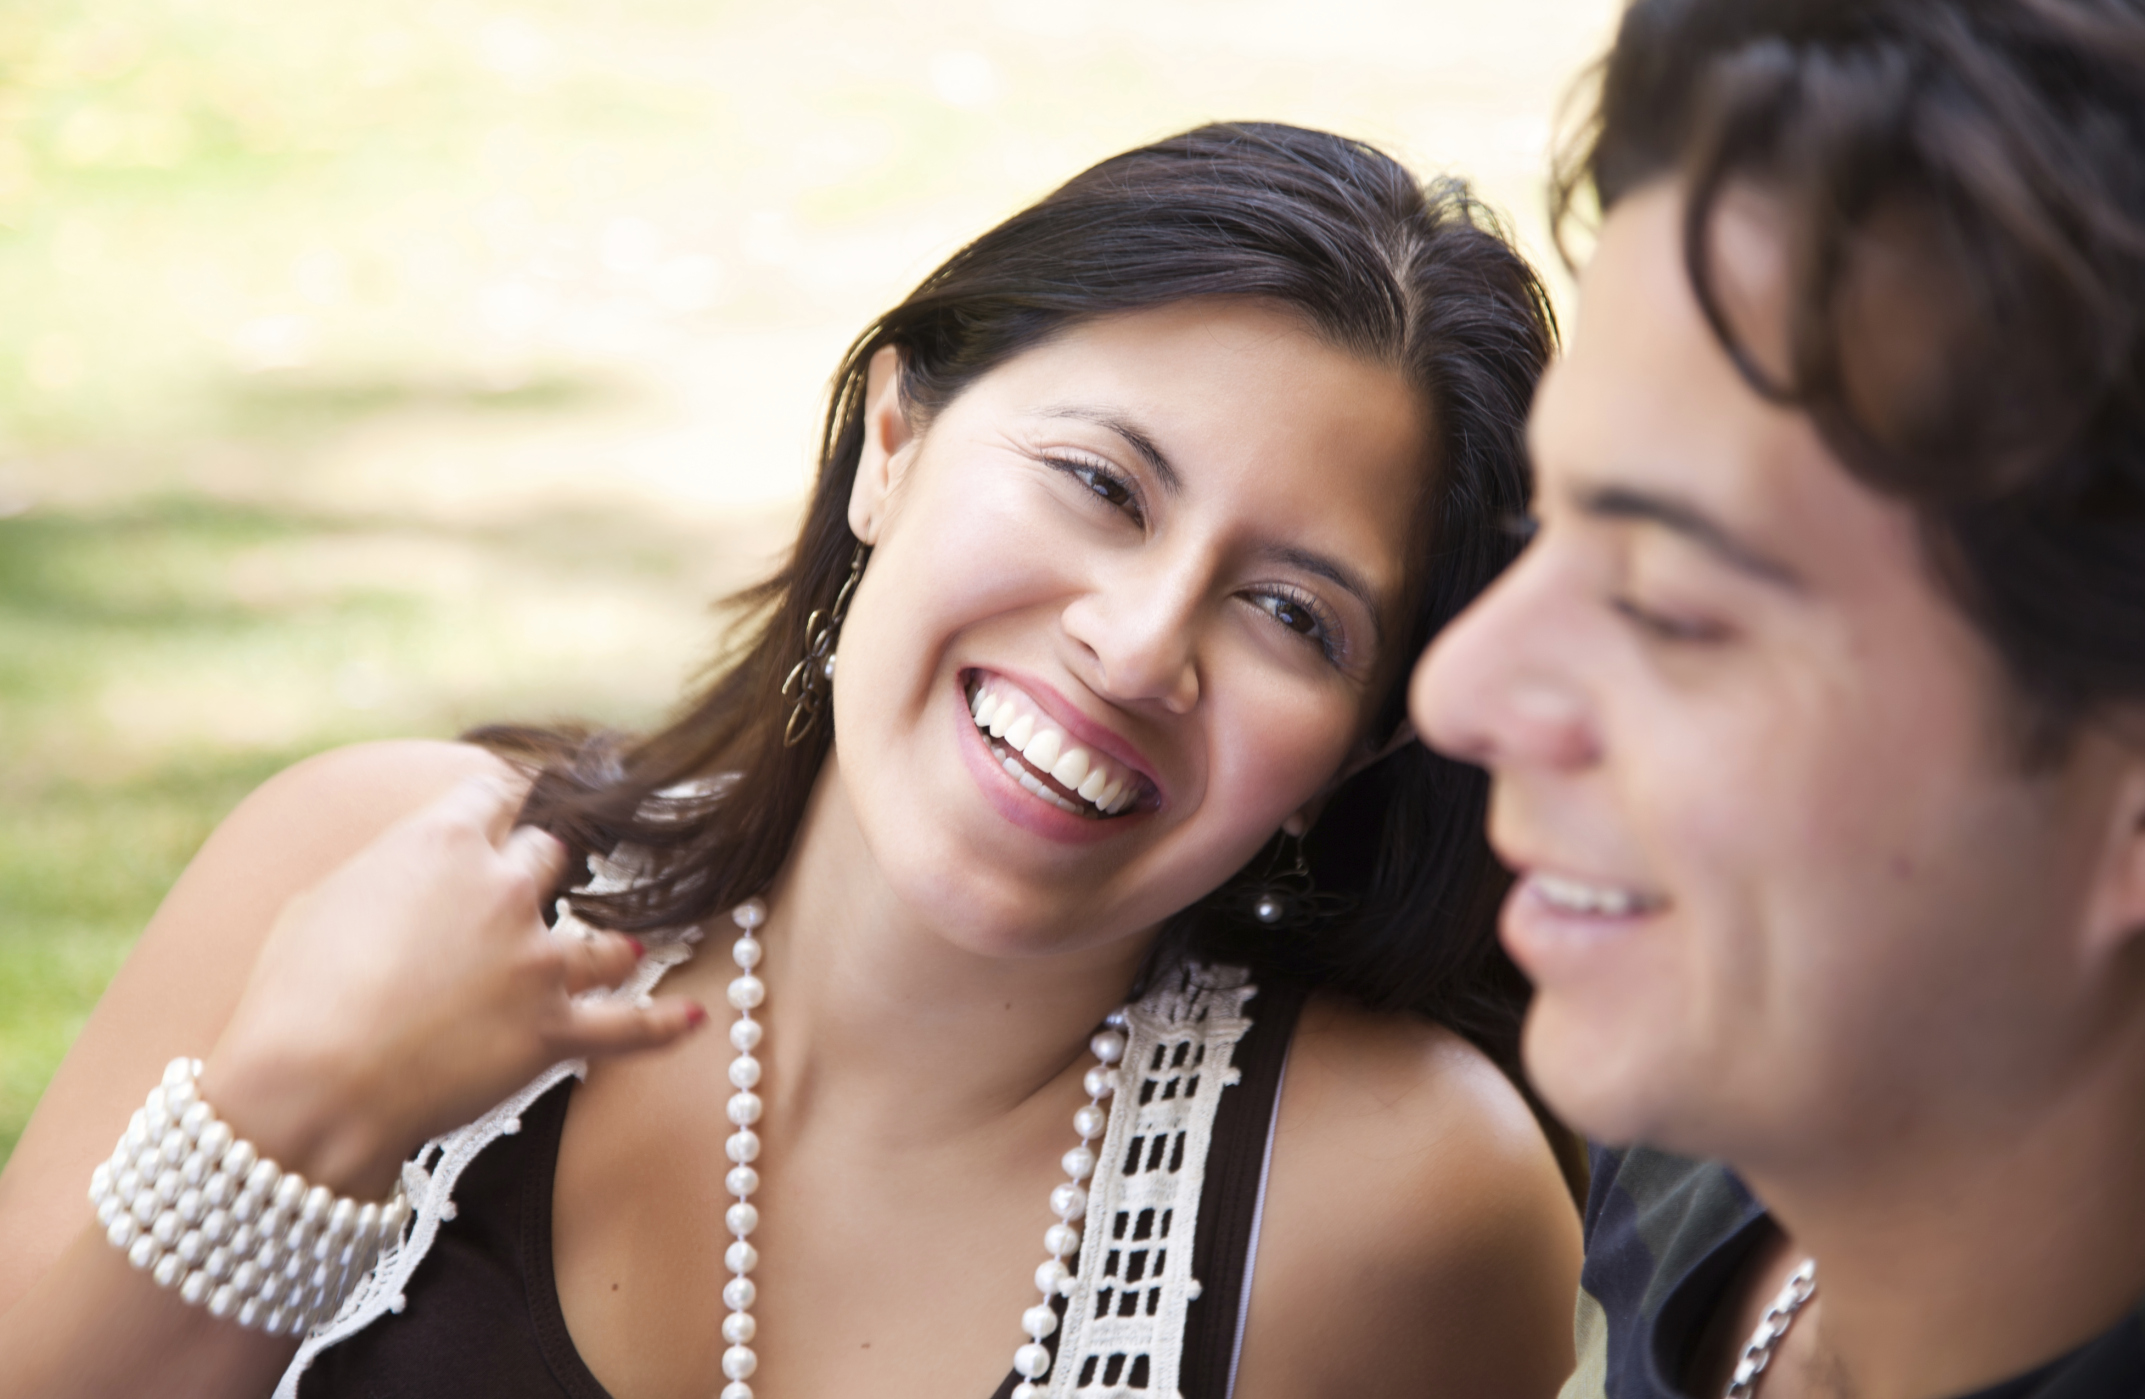 Mexican dating rituals dating in marriage